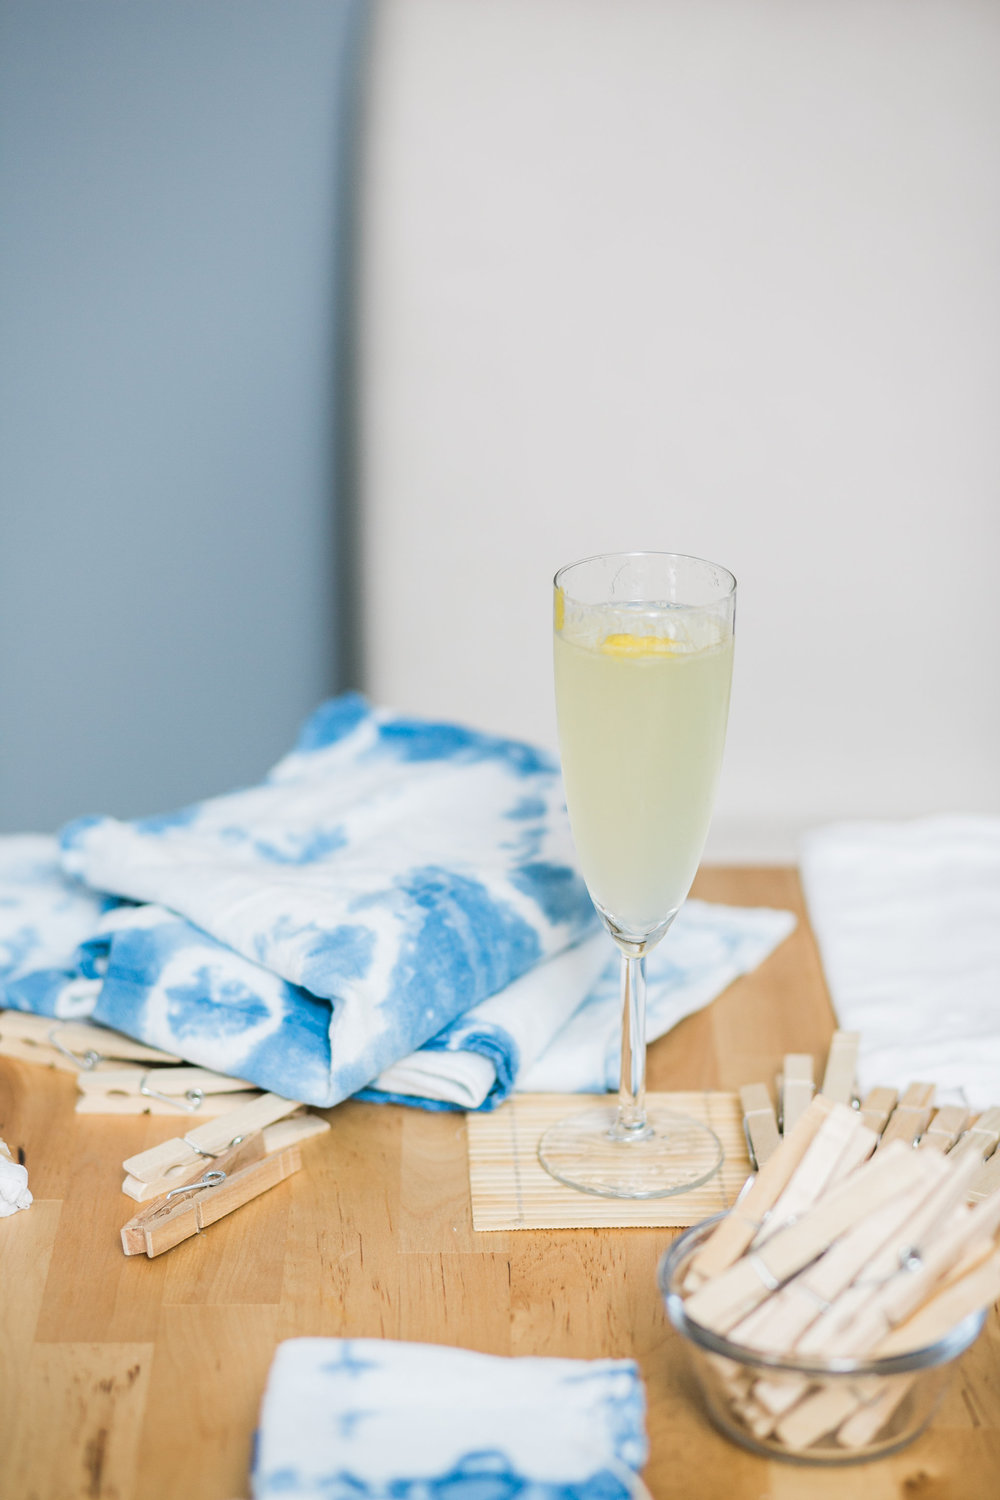 A finished Shibori-dyed tea towel and French 75. Photo by Jen Eun.